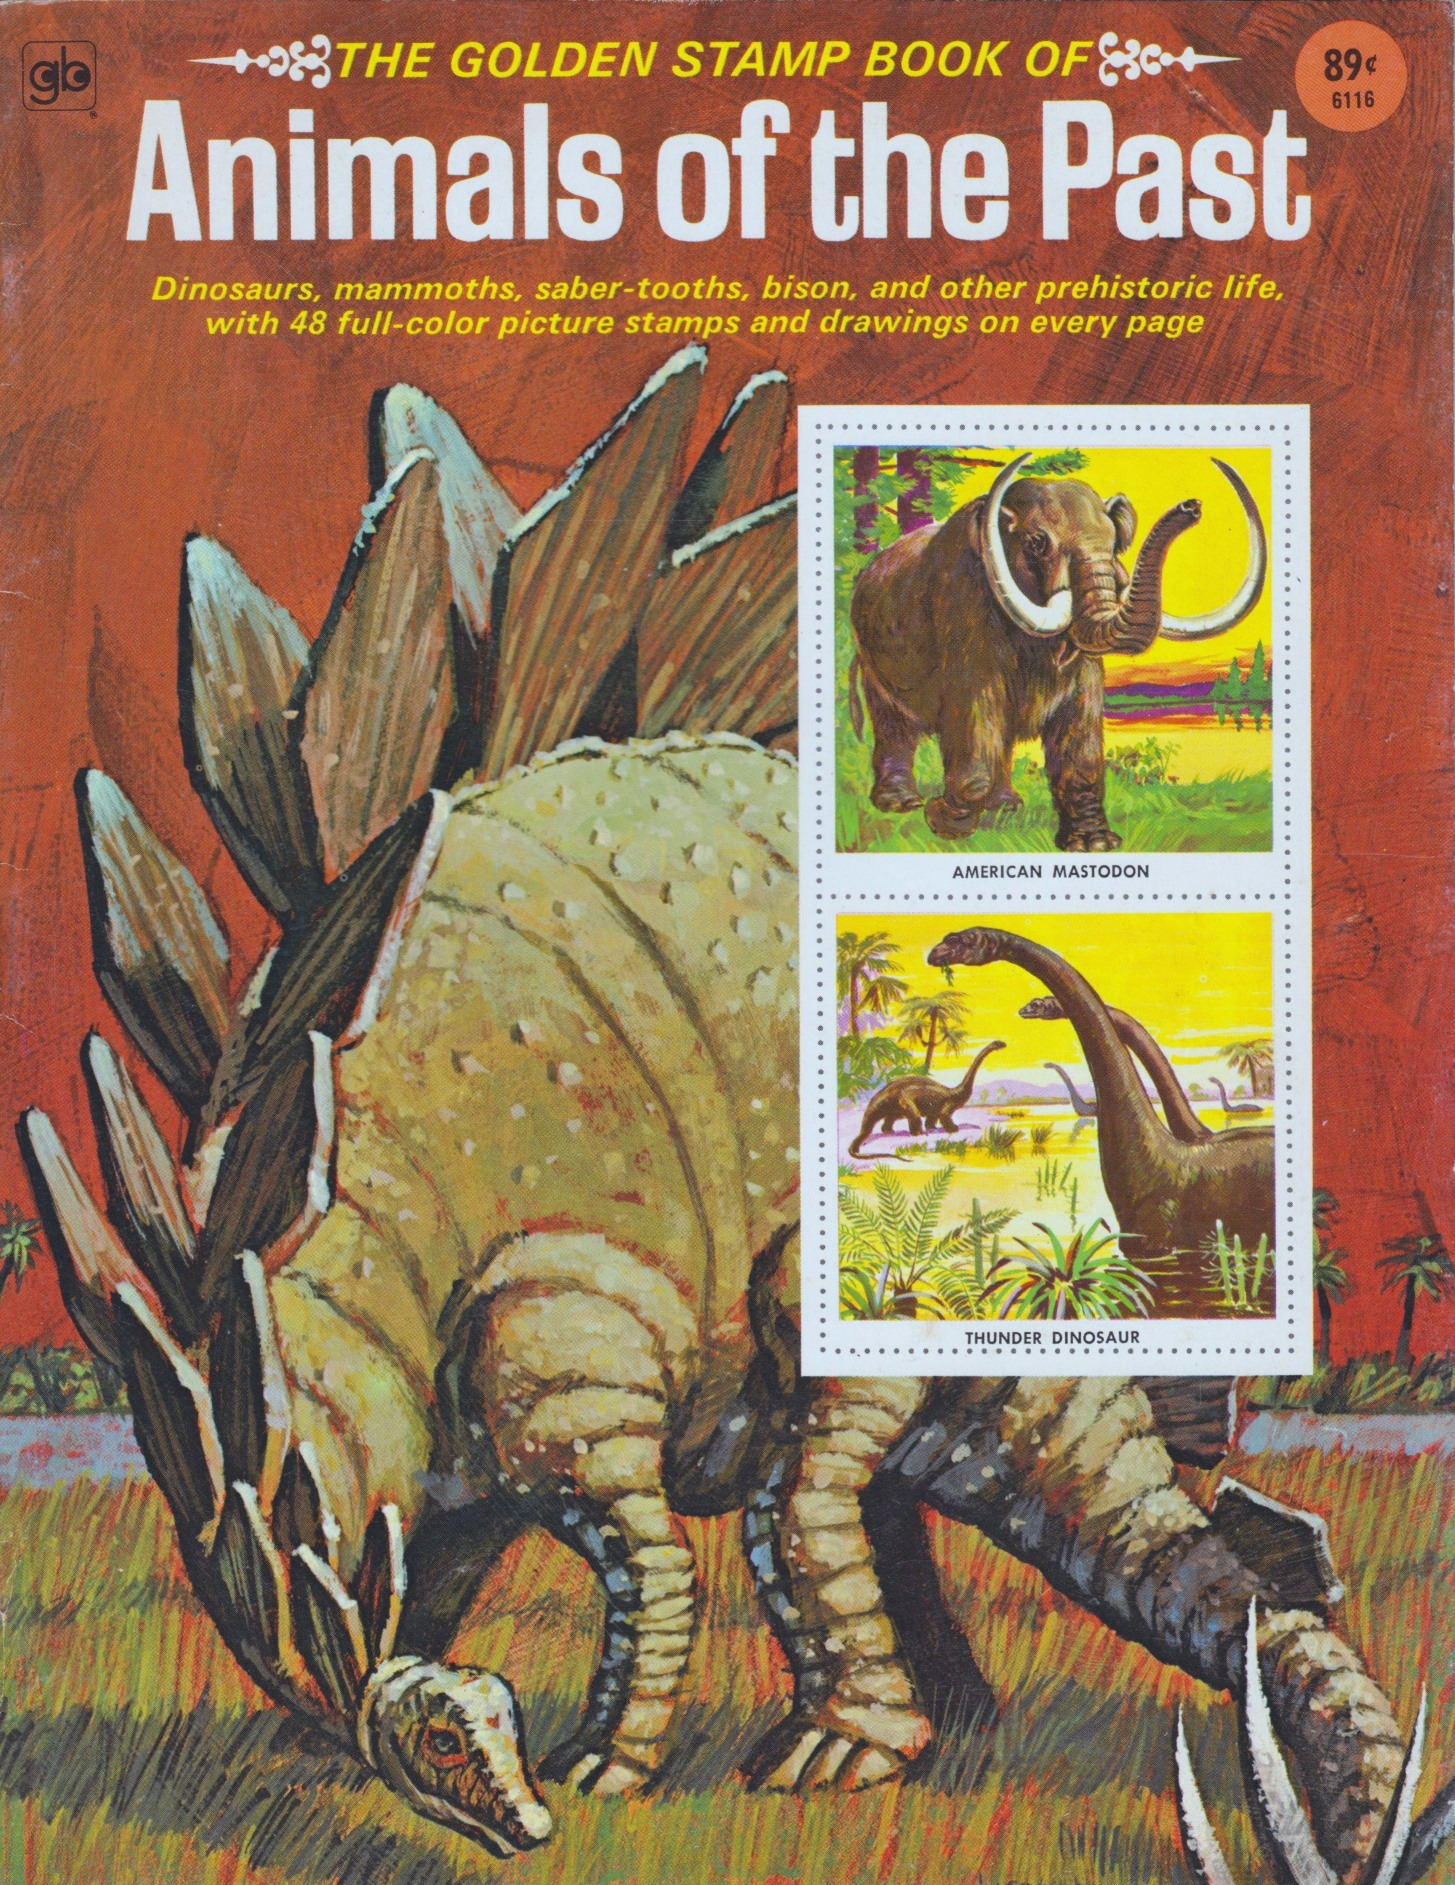 animals of the past stamps Book Cover